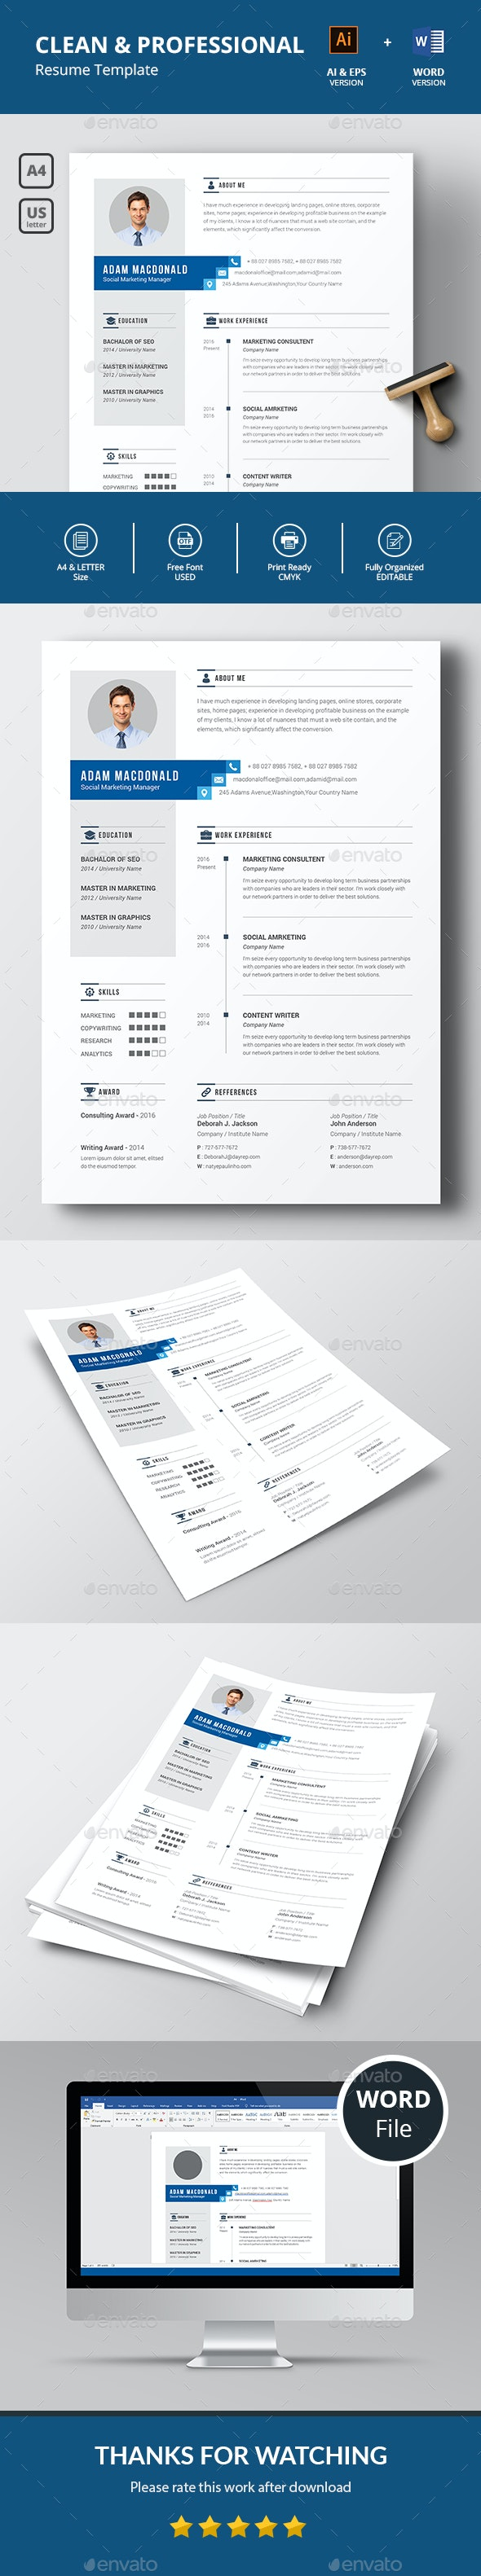 Clean Professional Resume - Resumes Stationery